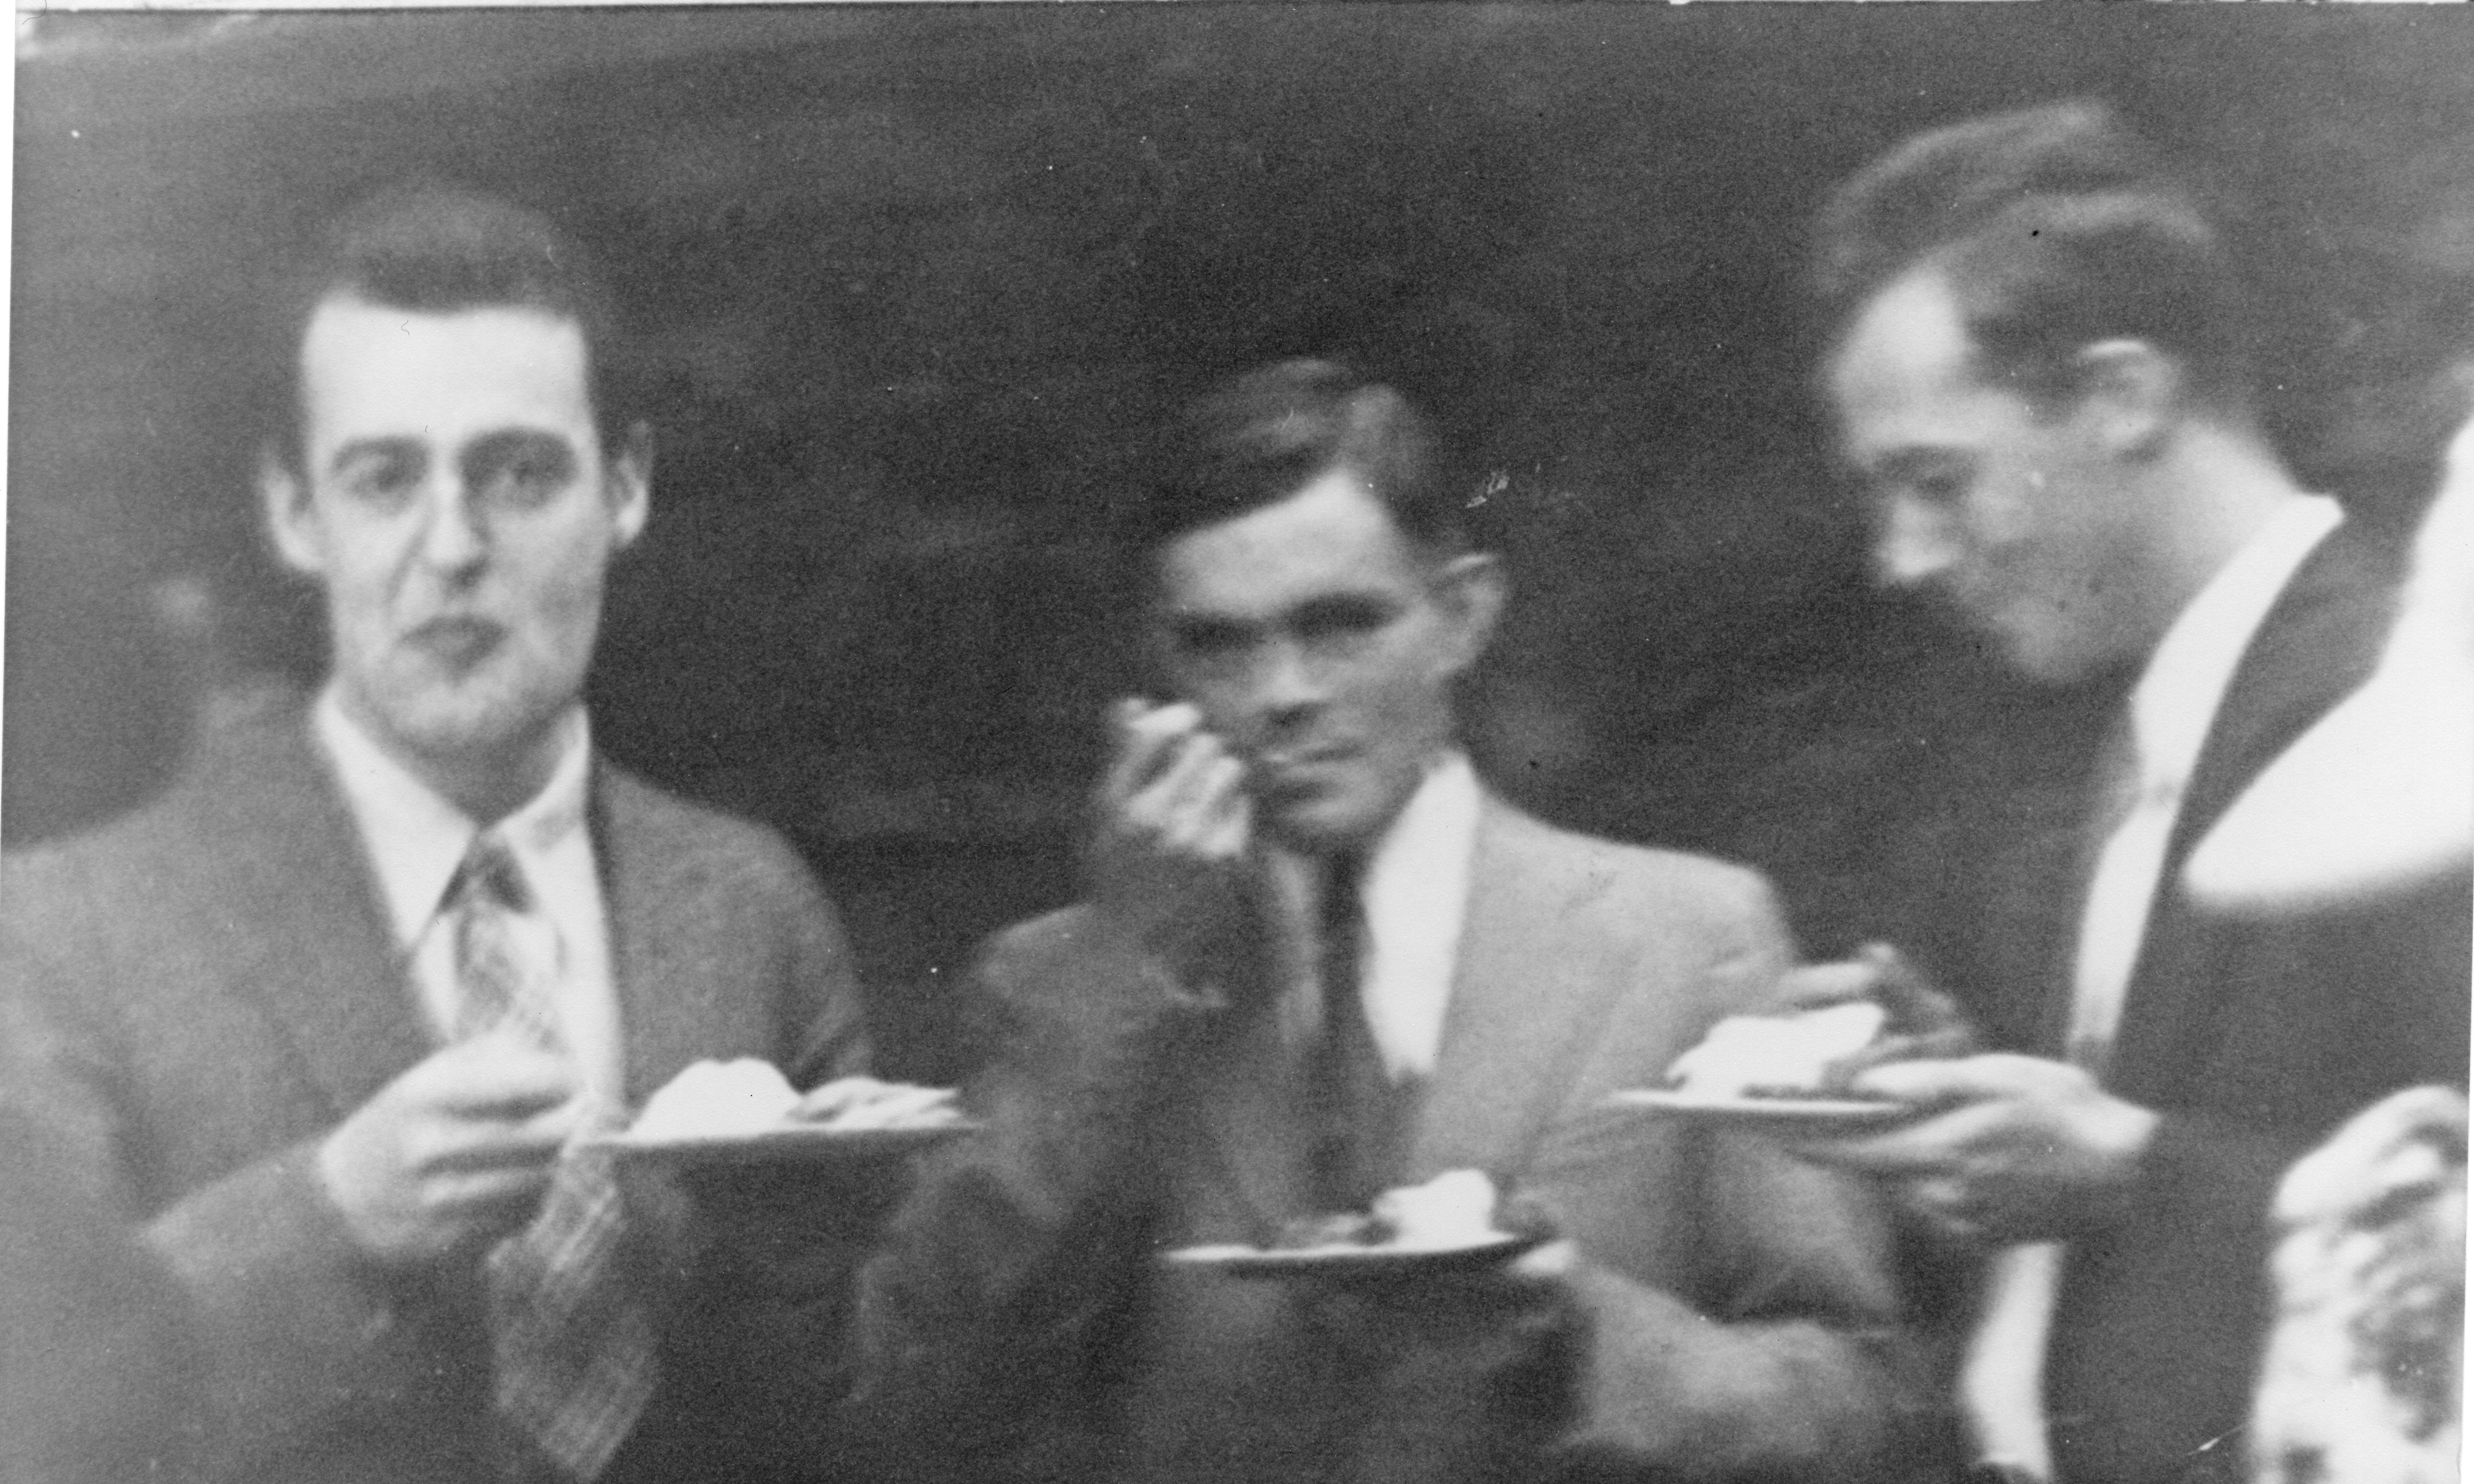 Snapshot of Turing, A. Venable Martin and another man at Princeton. [AMT/K/7/35]